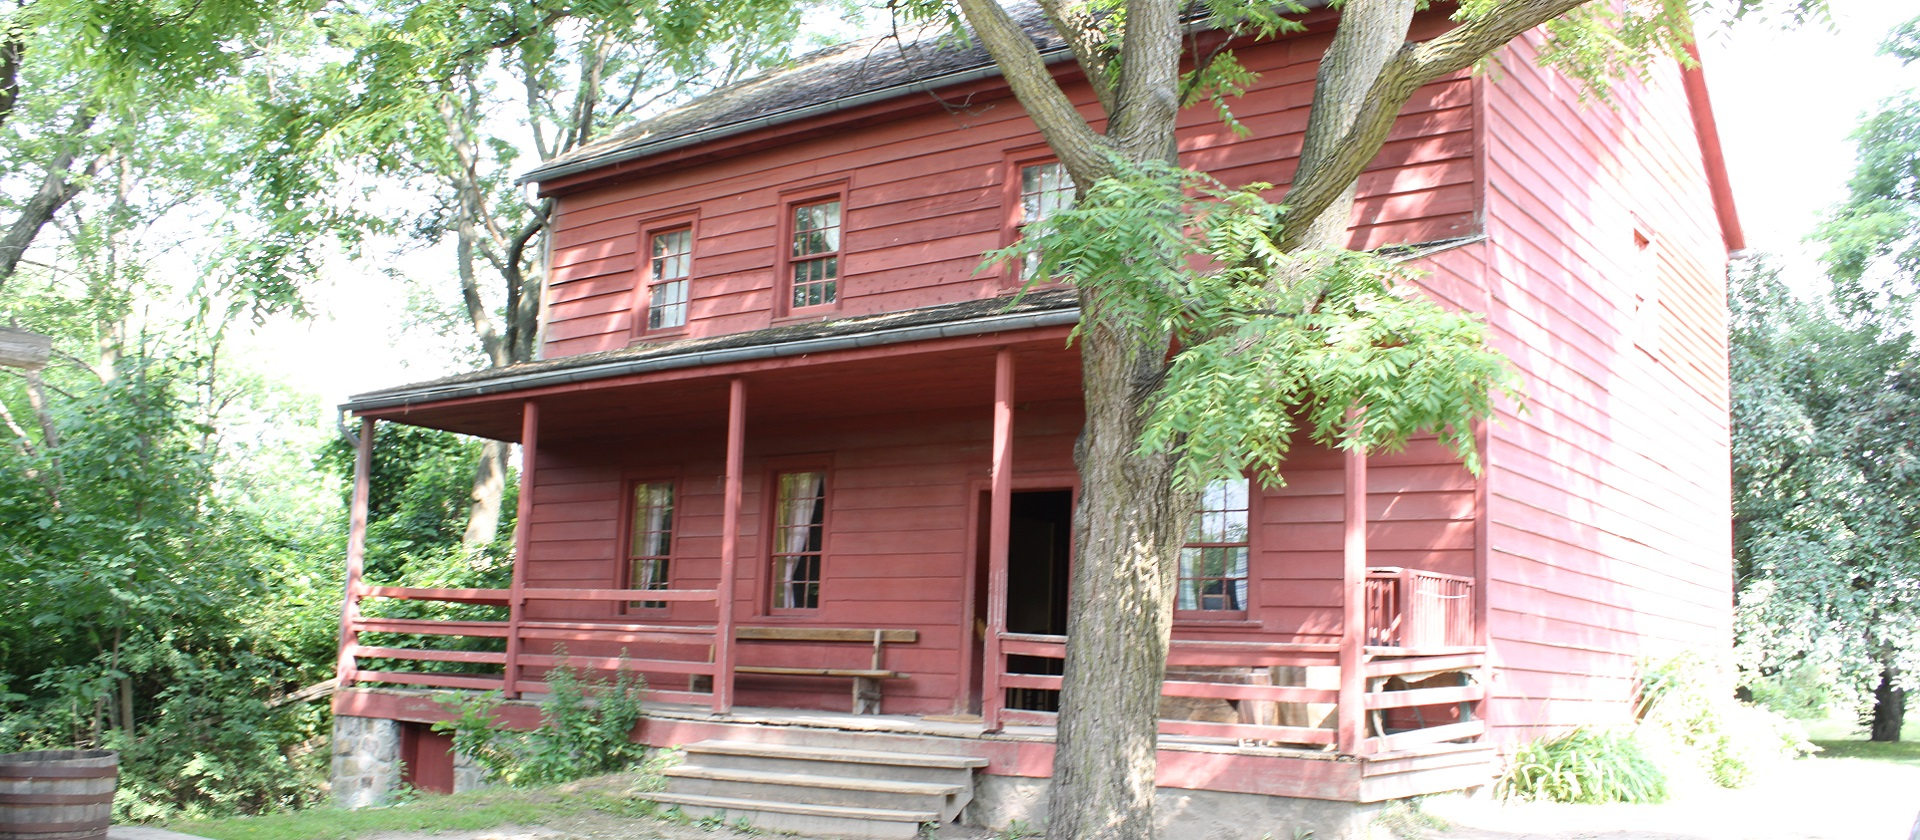 the Daniel Stong second house at Black Creek Pioneer Village